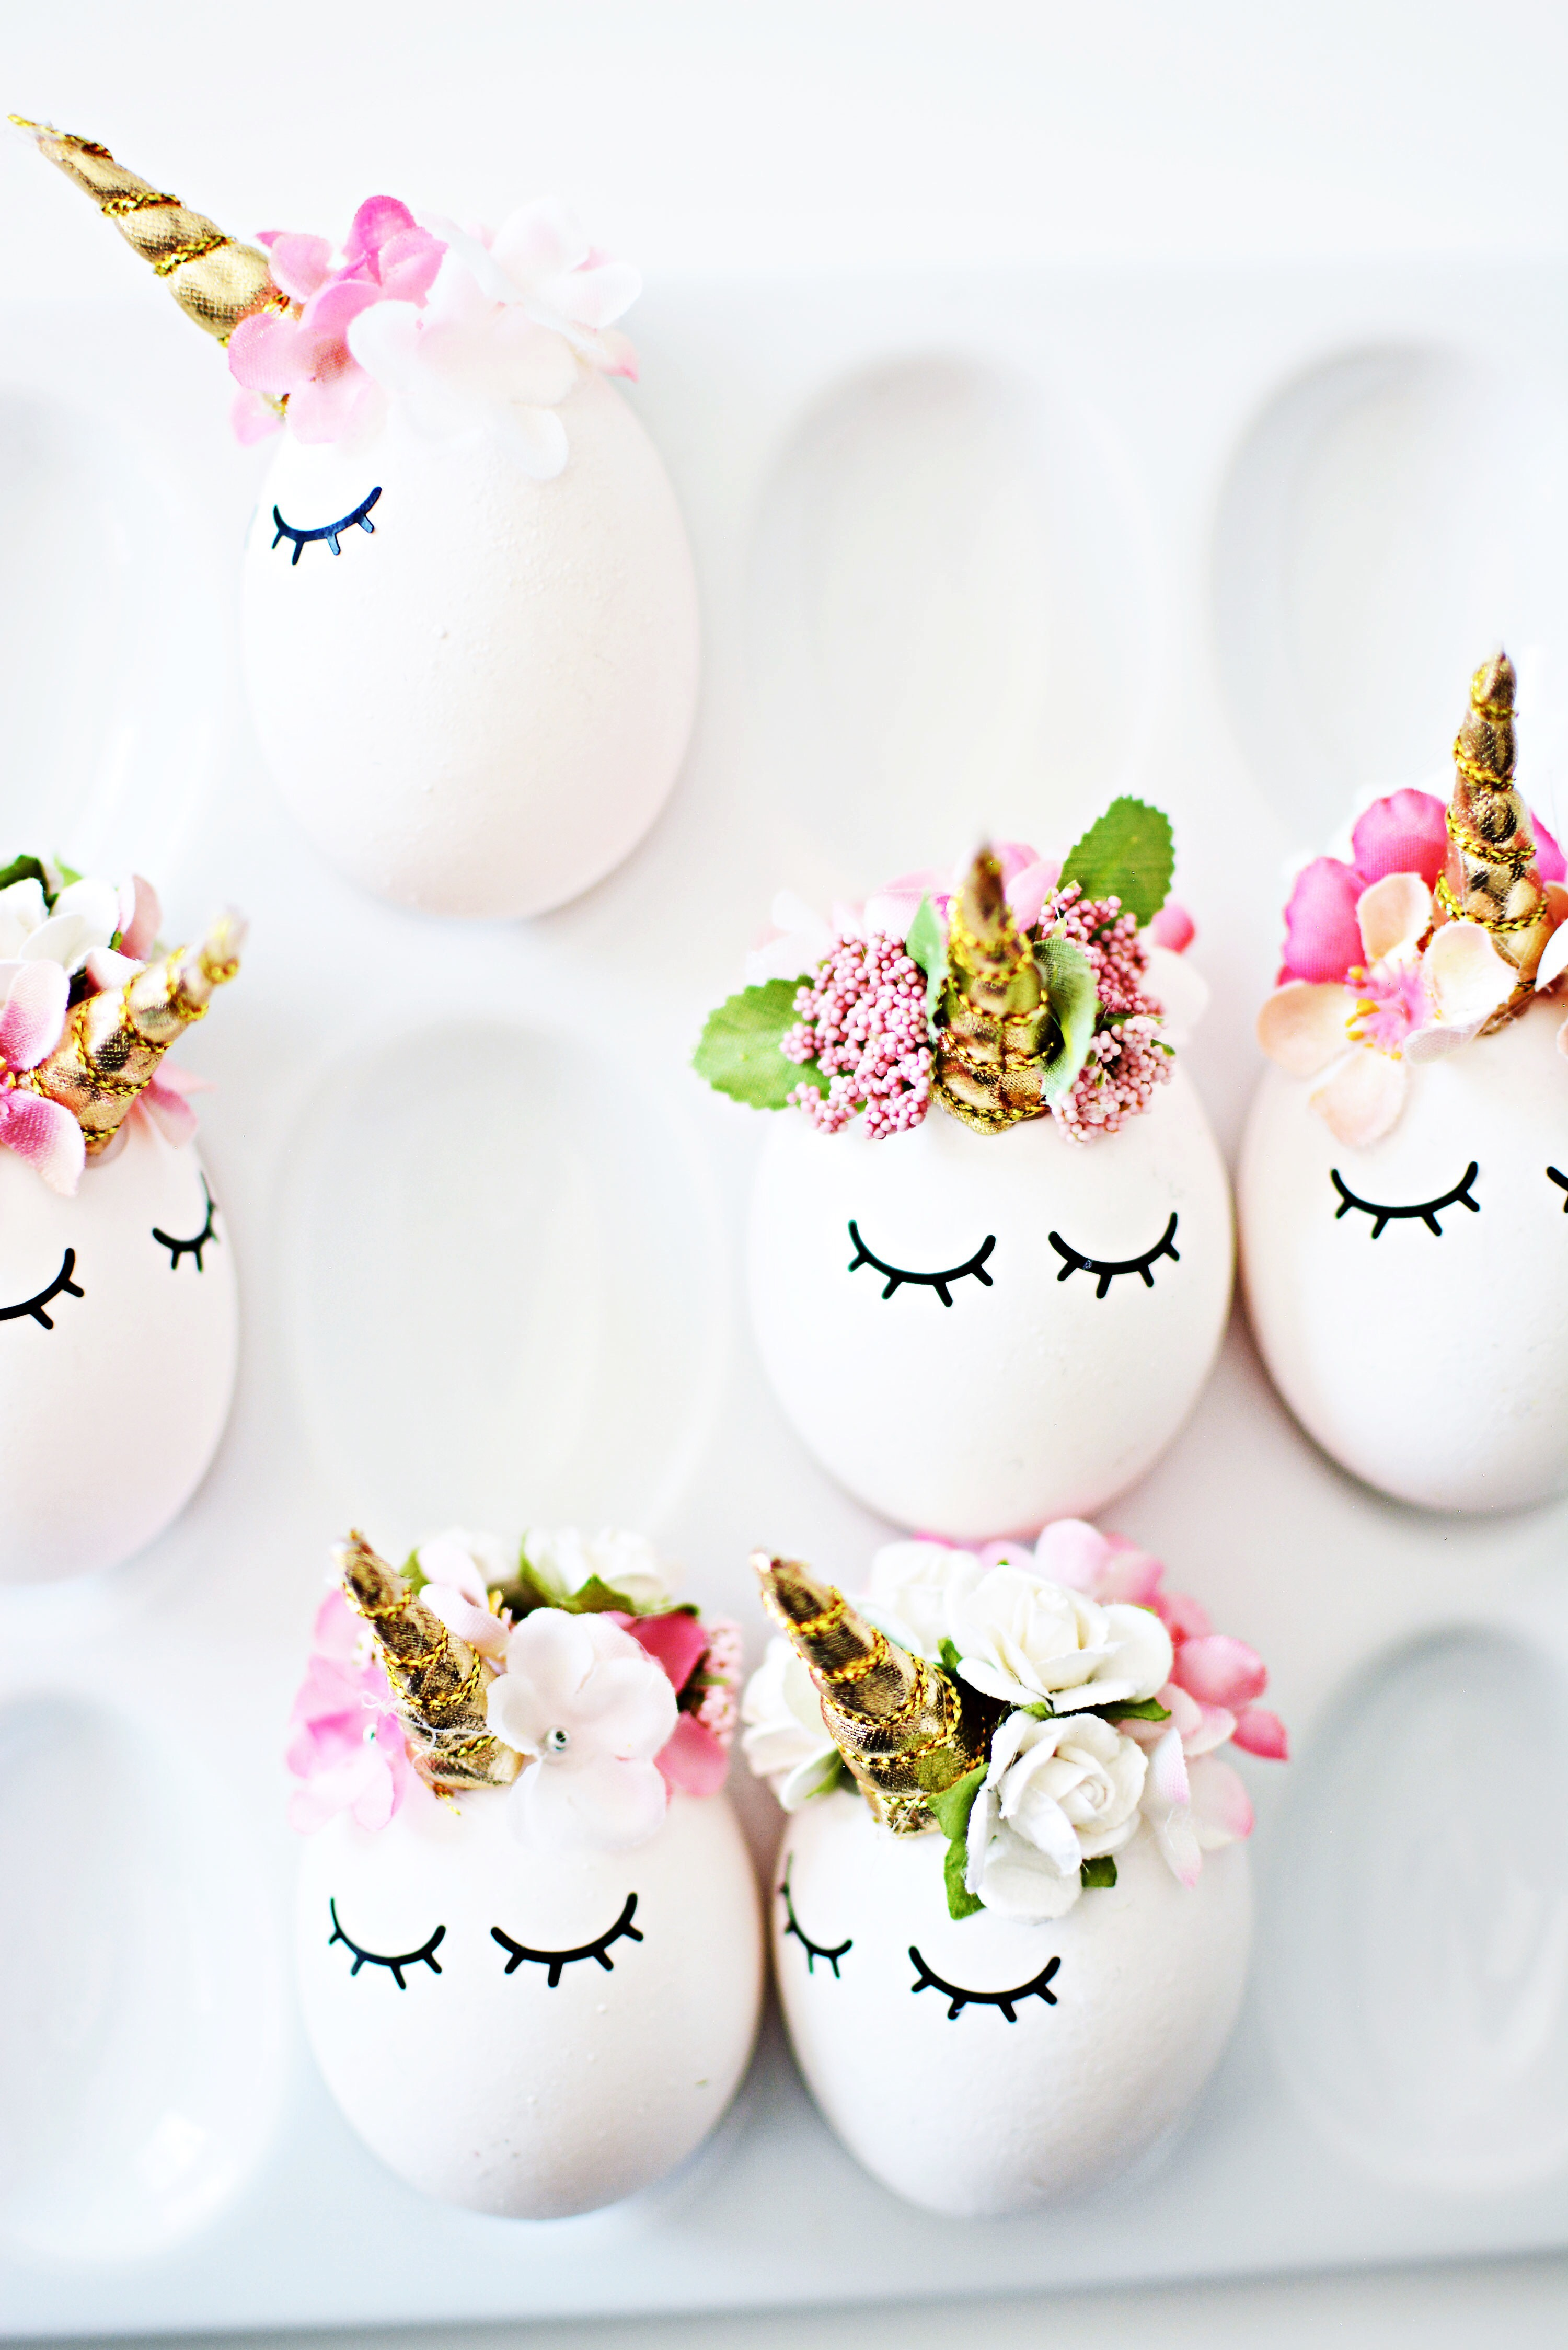 Diy unicorn easter eggs little inspiration a little hot glue some flowers and a few vinyl sleepy eyes later you have these irresistibly cute easter eggs any unicorn fanatic will love solutioingenieria Gallery